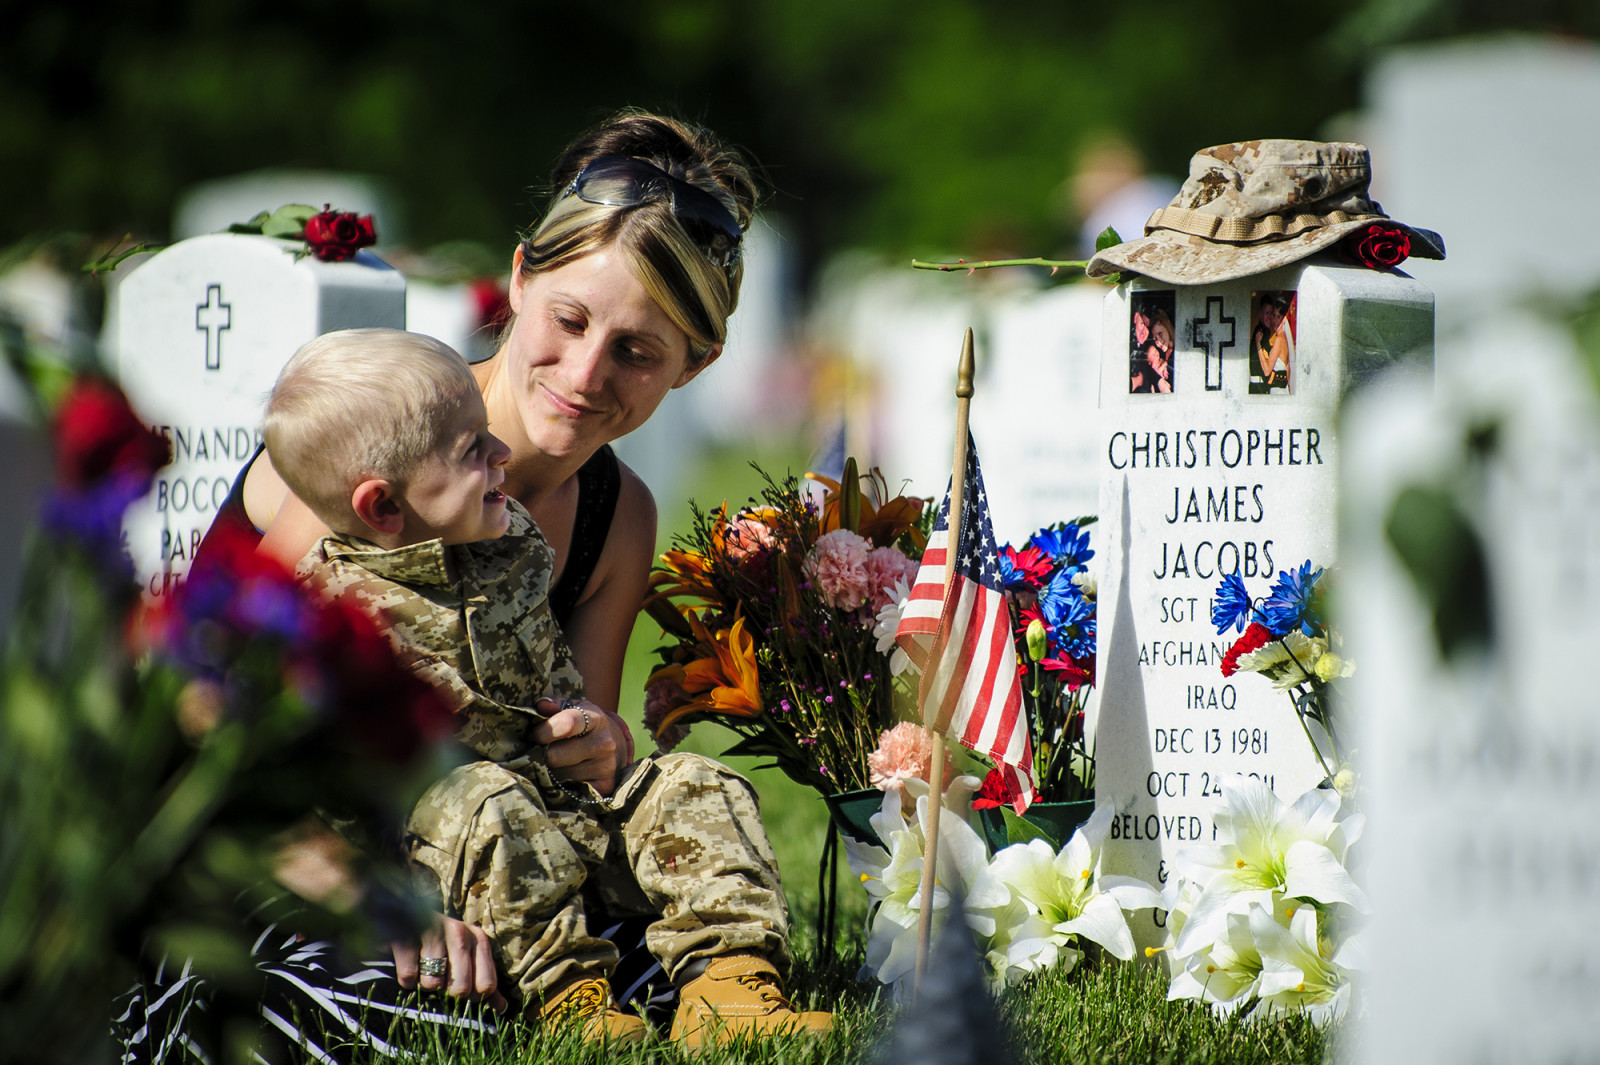 On Memorial Day, Brittany Jacobs of Hertford, North Carolina sits with her son, Christian, at the gravesite of her husband, Marine Sgt. Christopher Jacobs, at National Cemetery in Arlington Virginia, USA on 27 May, 2013. (Pete Marovich/ European PressPhoto Agency)